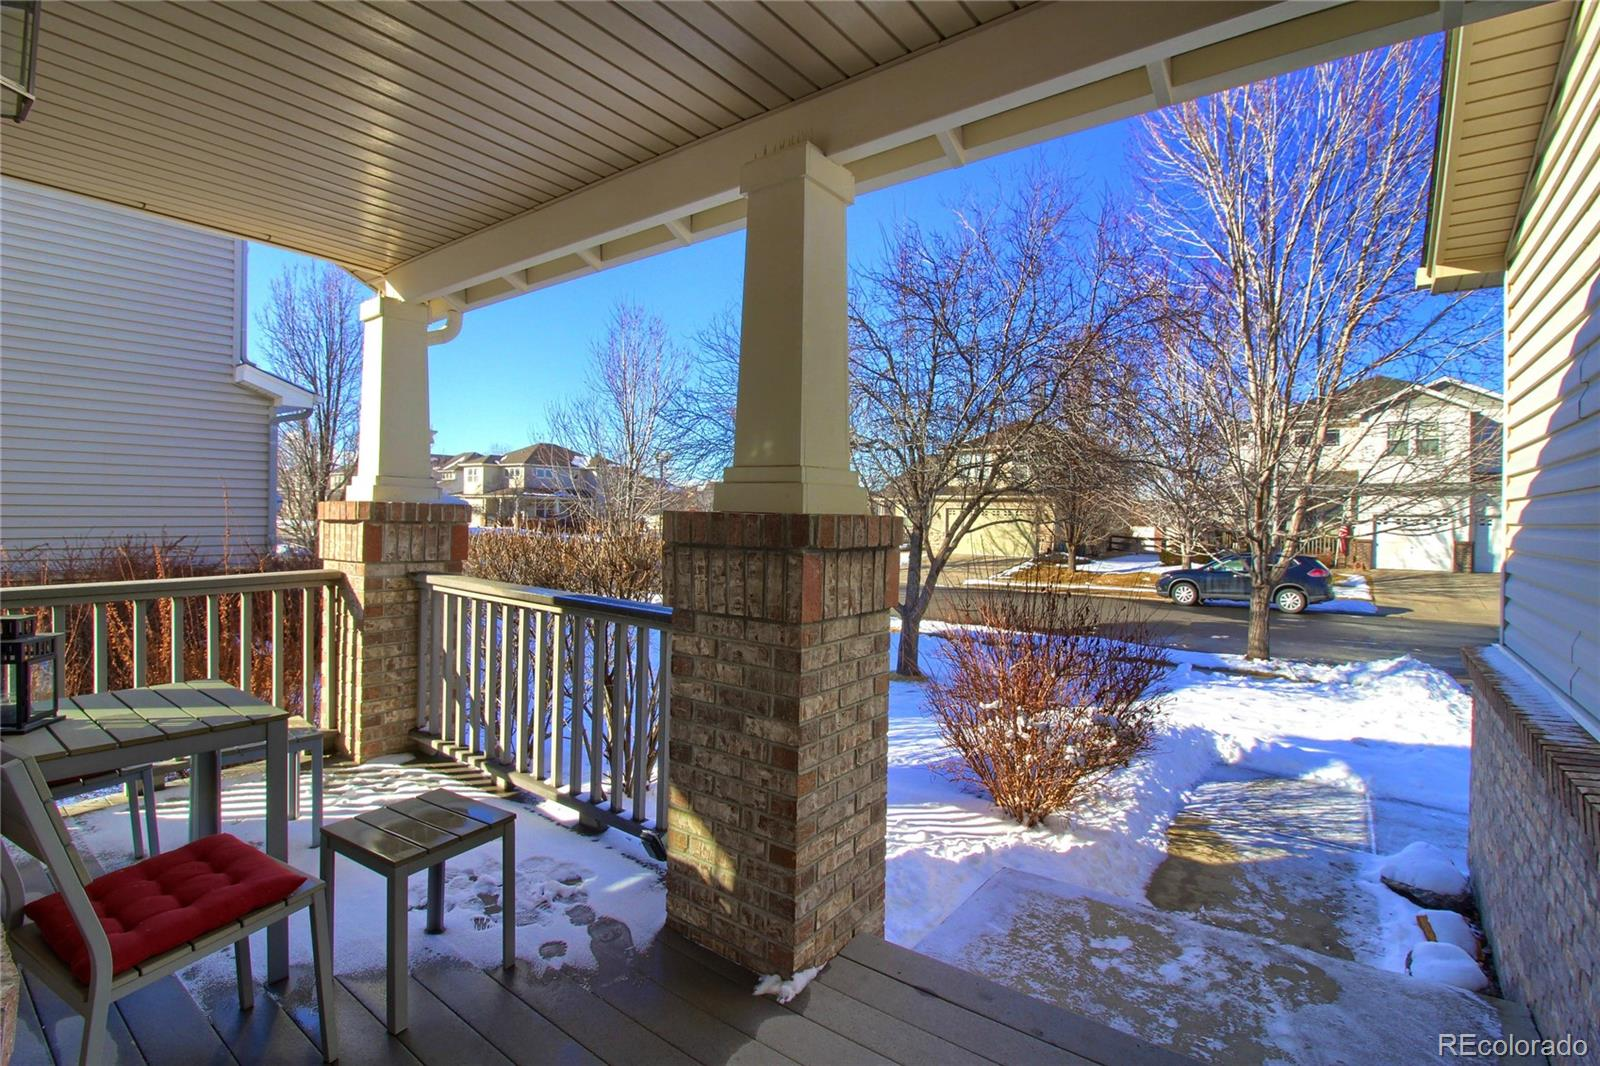 MLS# 3161208 - 32 - 1068 W 135th Court, Westminster, CO 80234